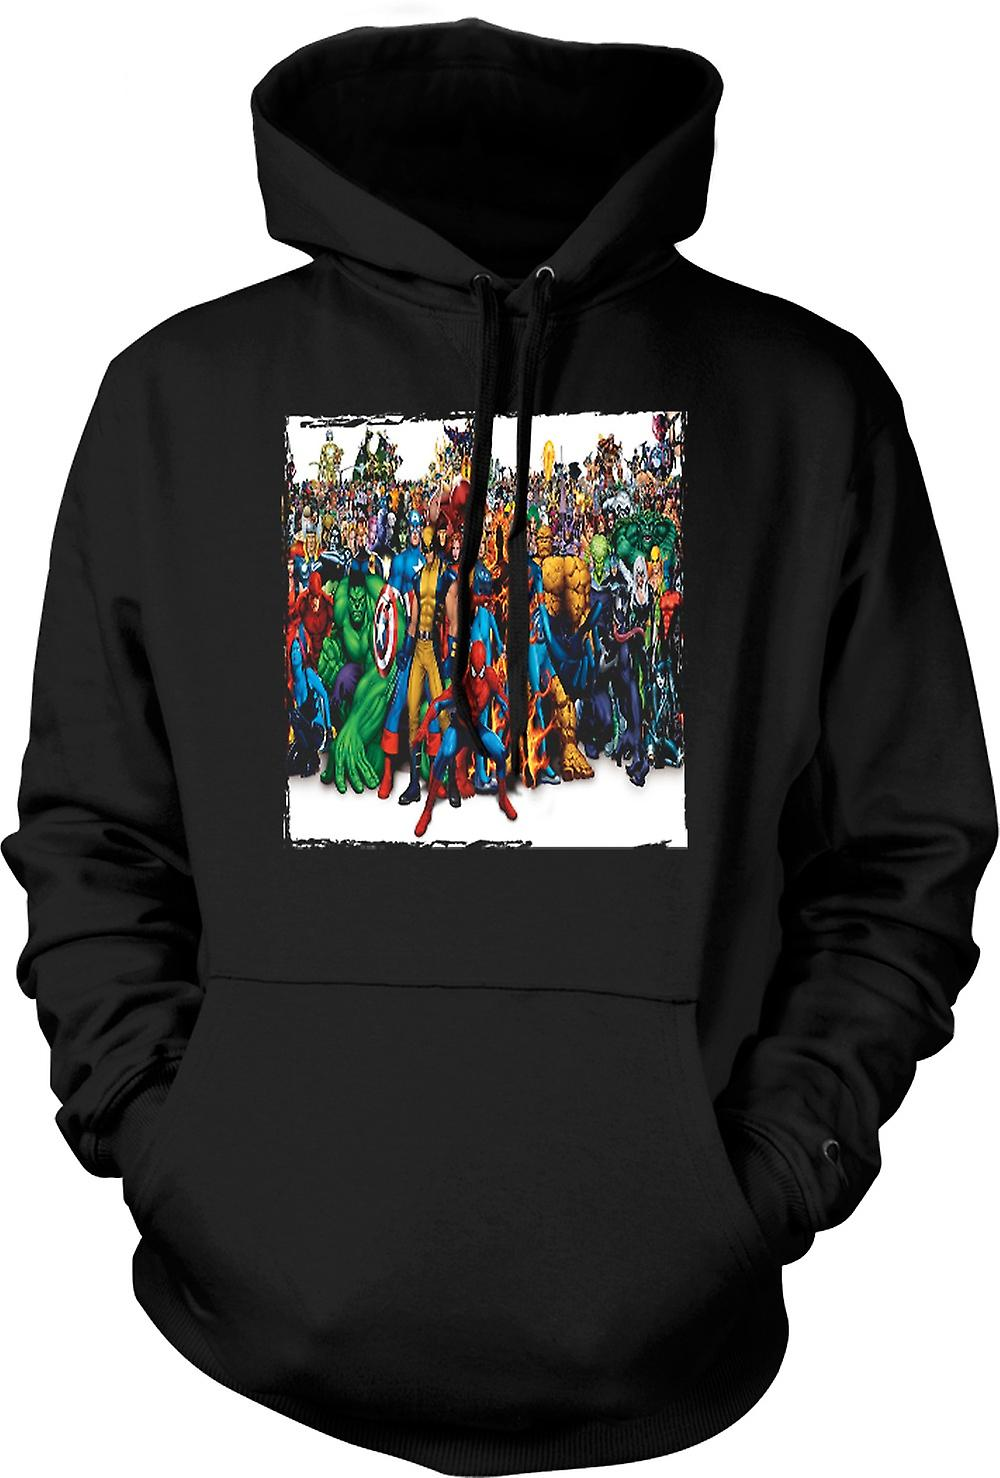 Kinder Hoodie - Marvel-Comic-Helden-Gruppe - Portait